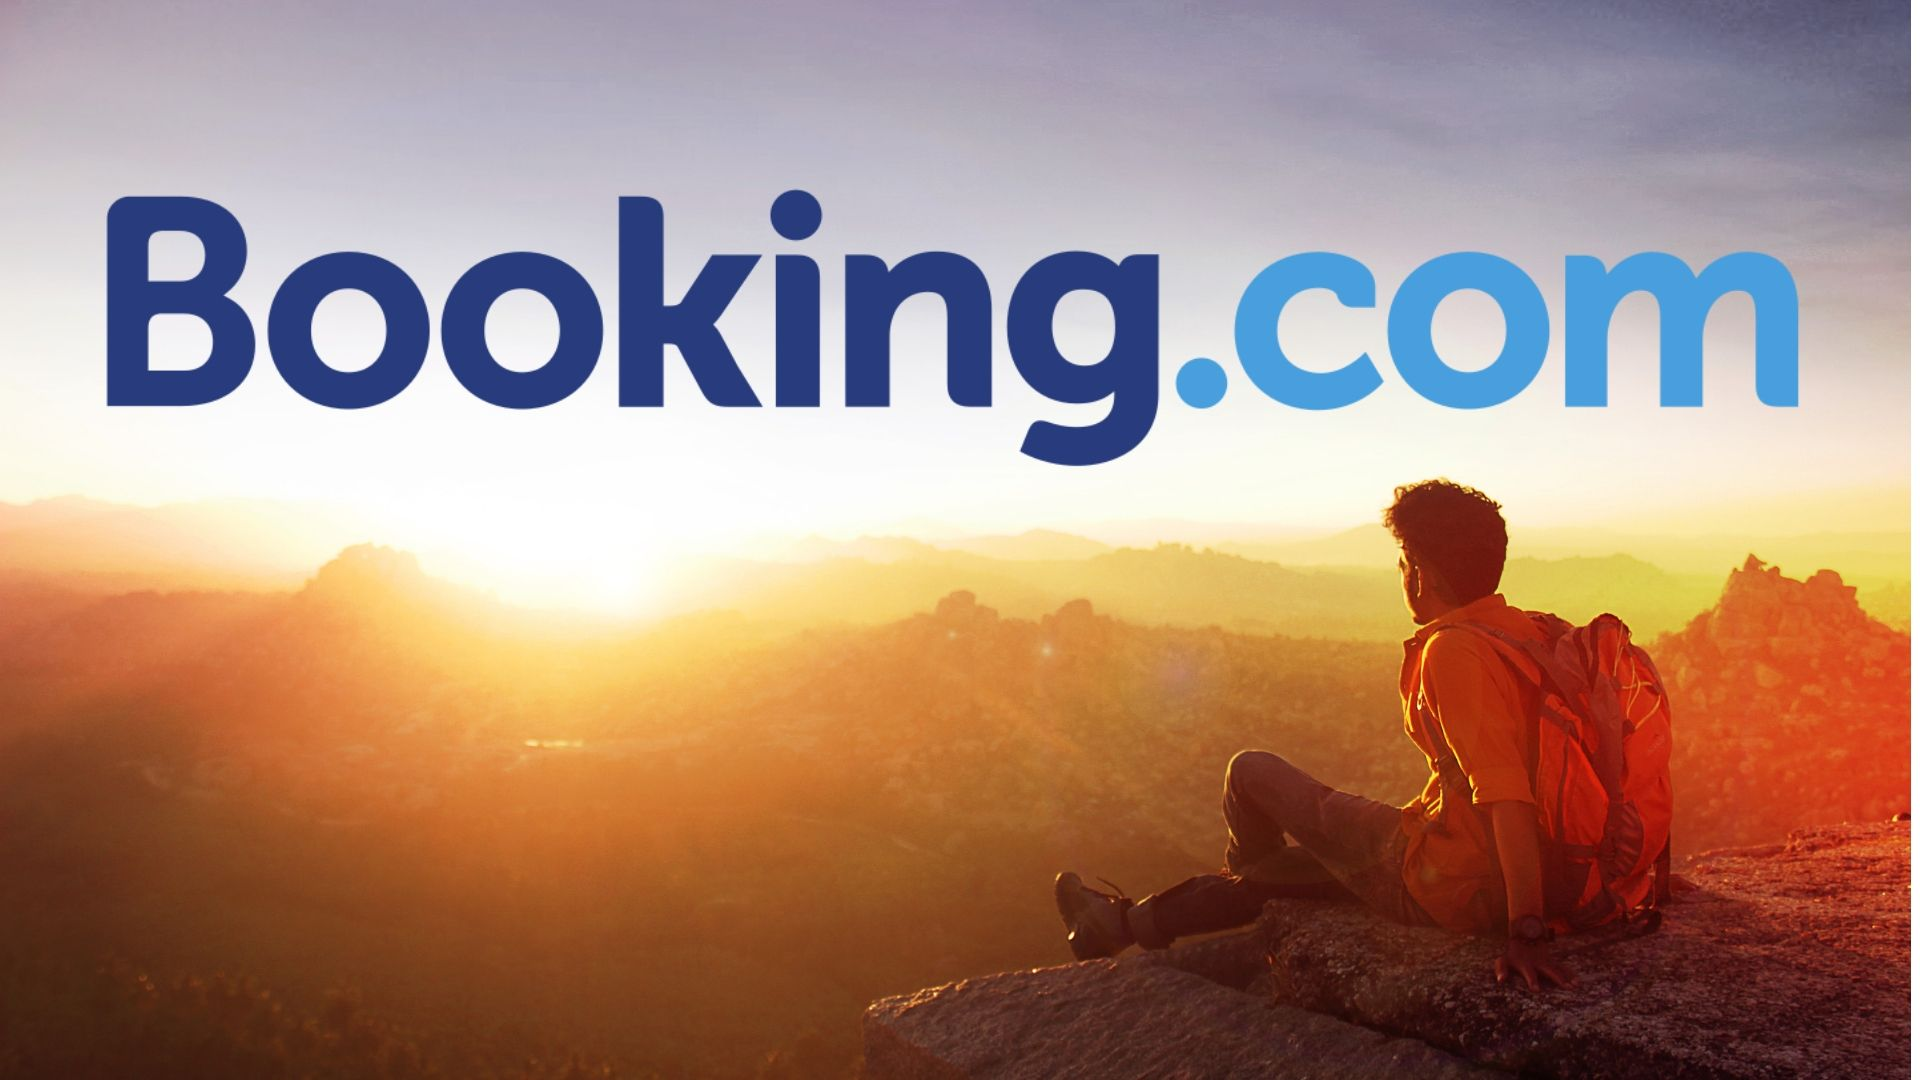 Booking.com Opportunities